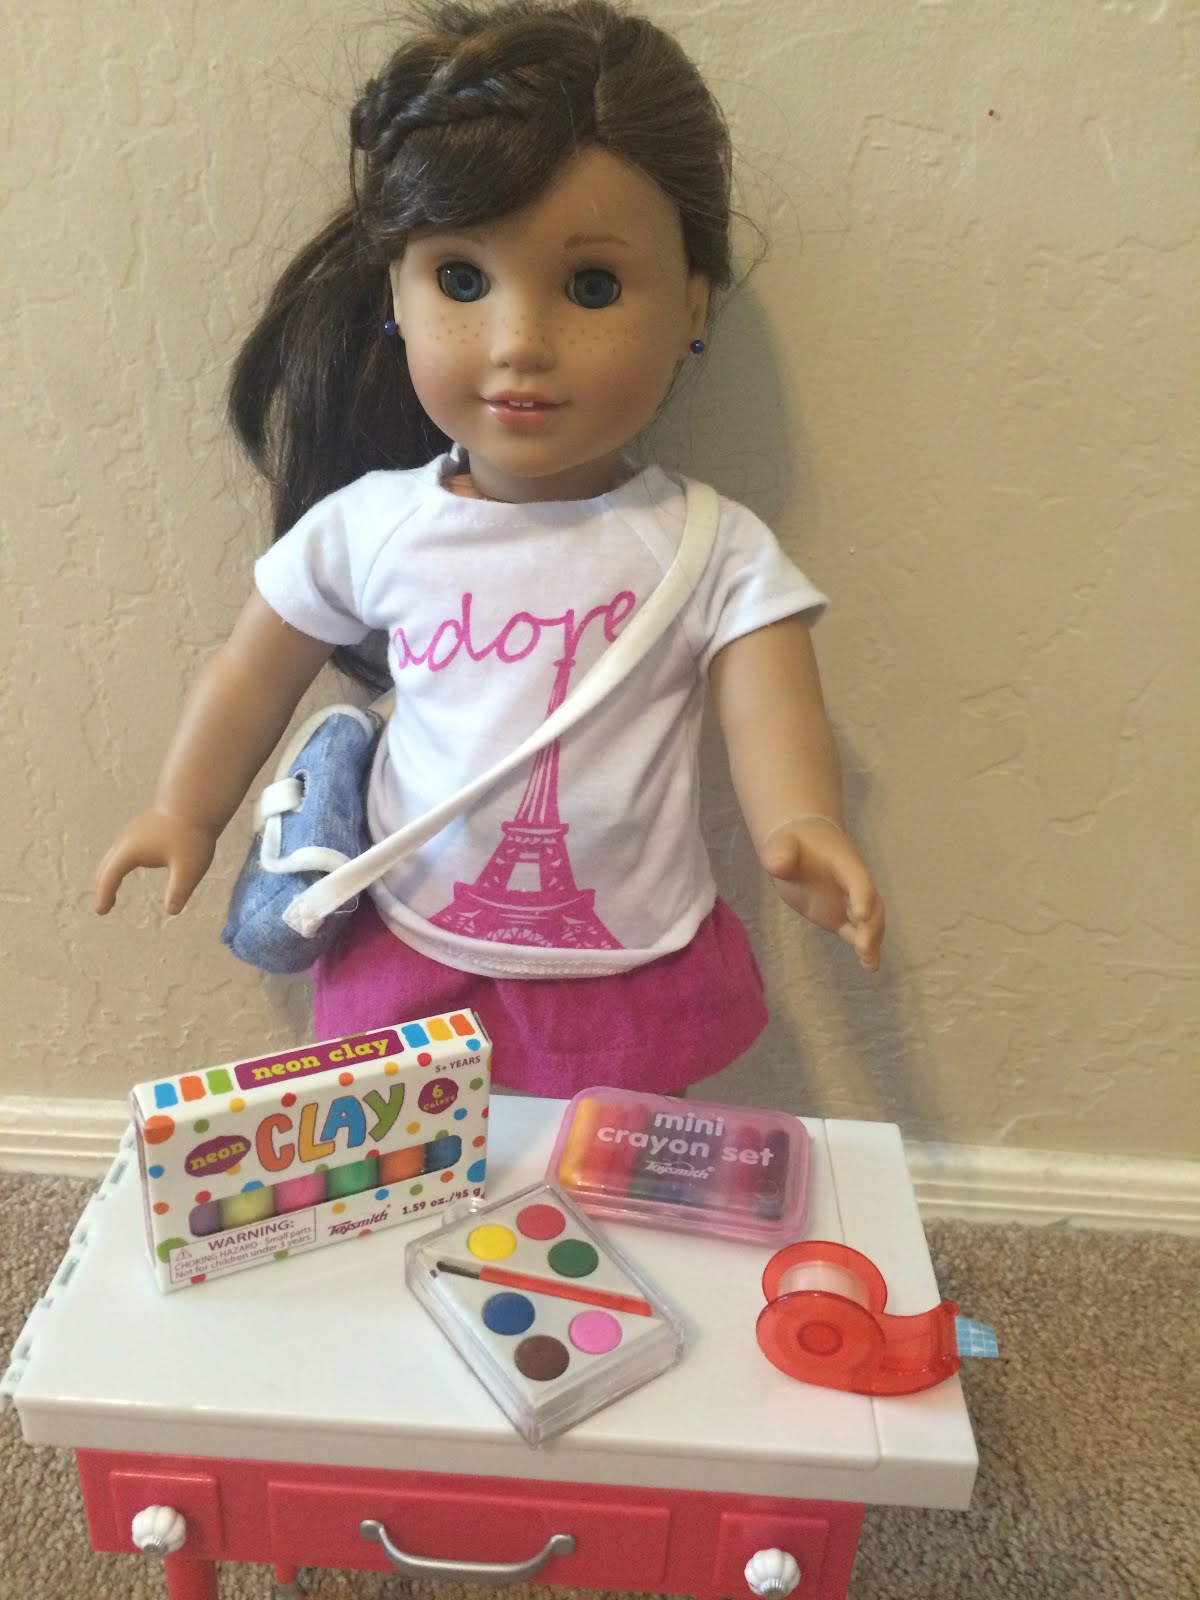 American Girls Help: A Group of Girls Selling AG Doll items to Raise funds for Refugees